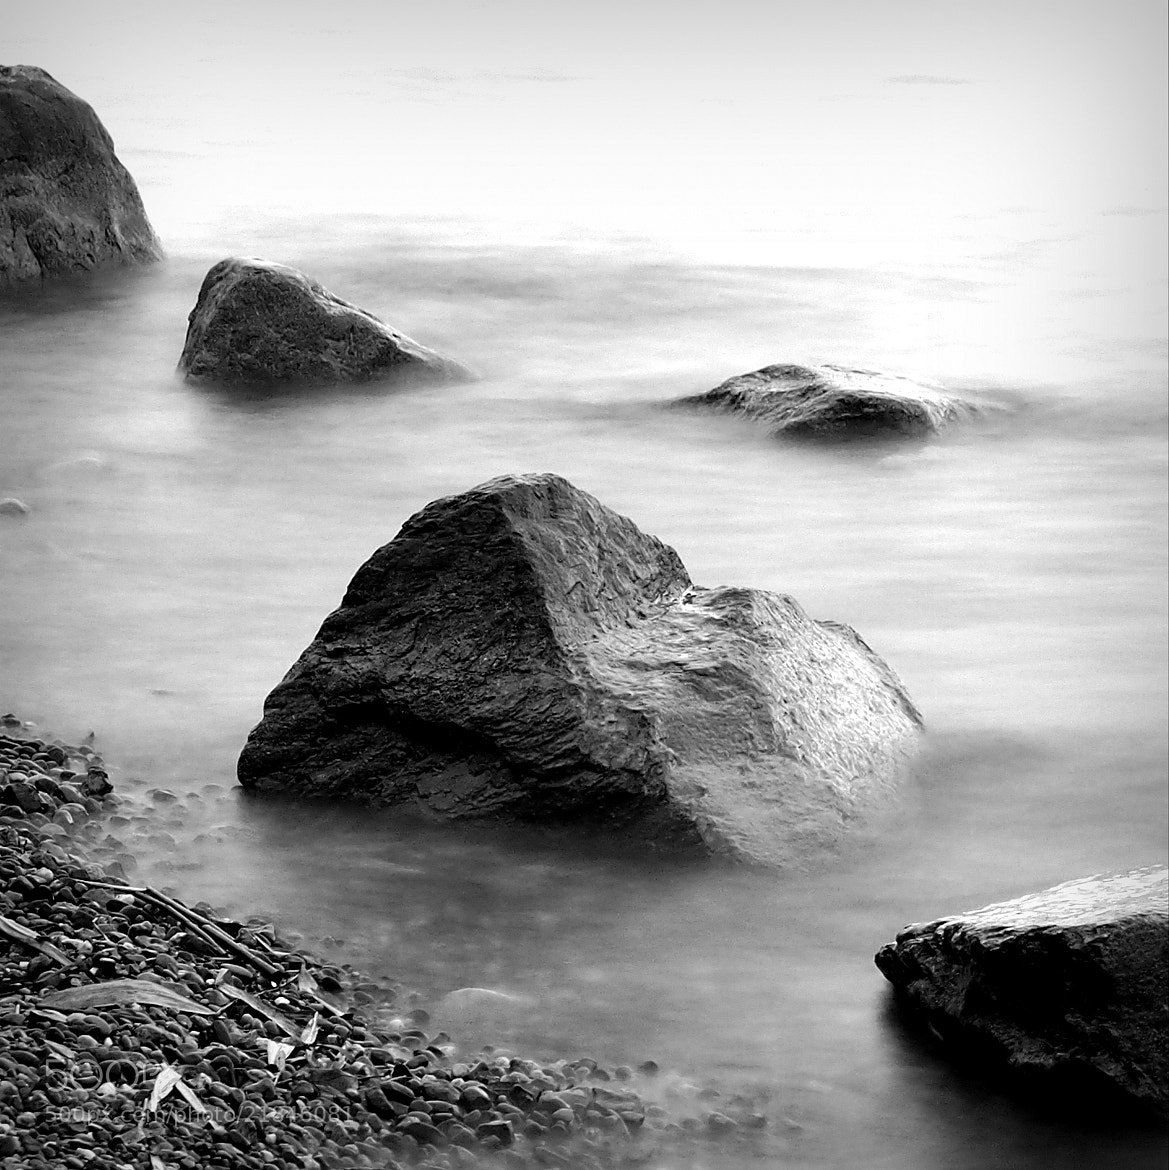 Photograph Stones by weidi2 on 500px